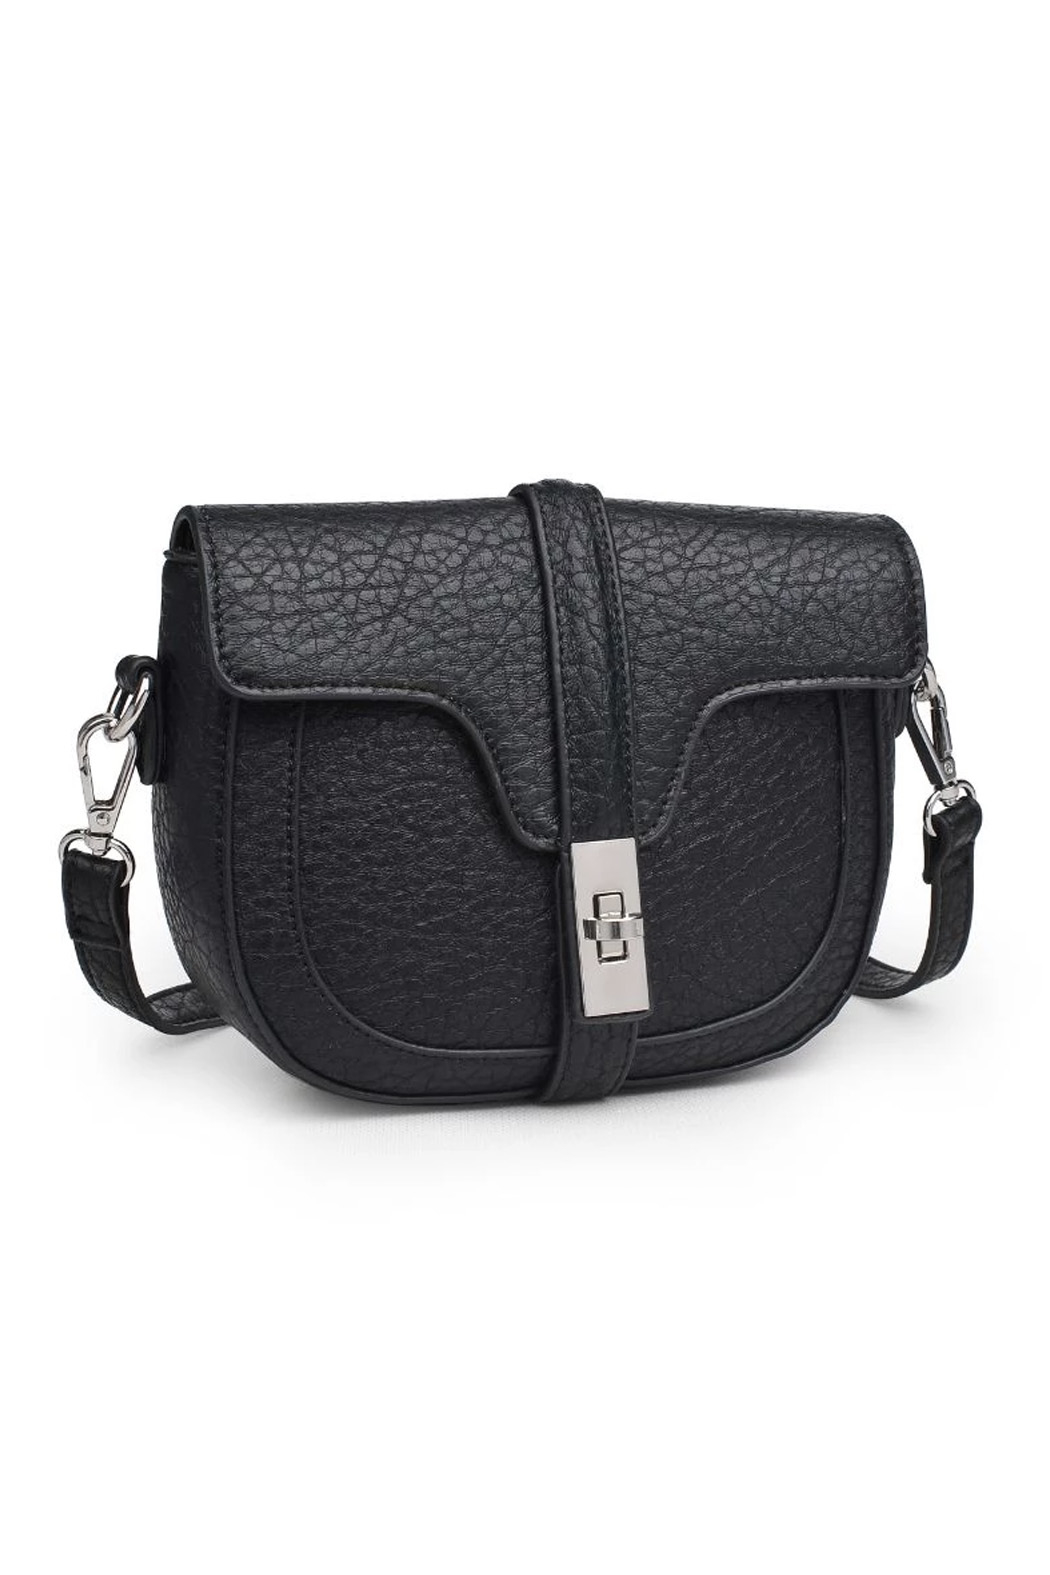 Urban Expressions Rory Vegan Leather Crossbody - Front Full Image